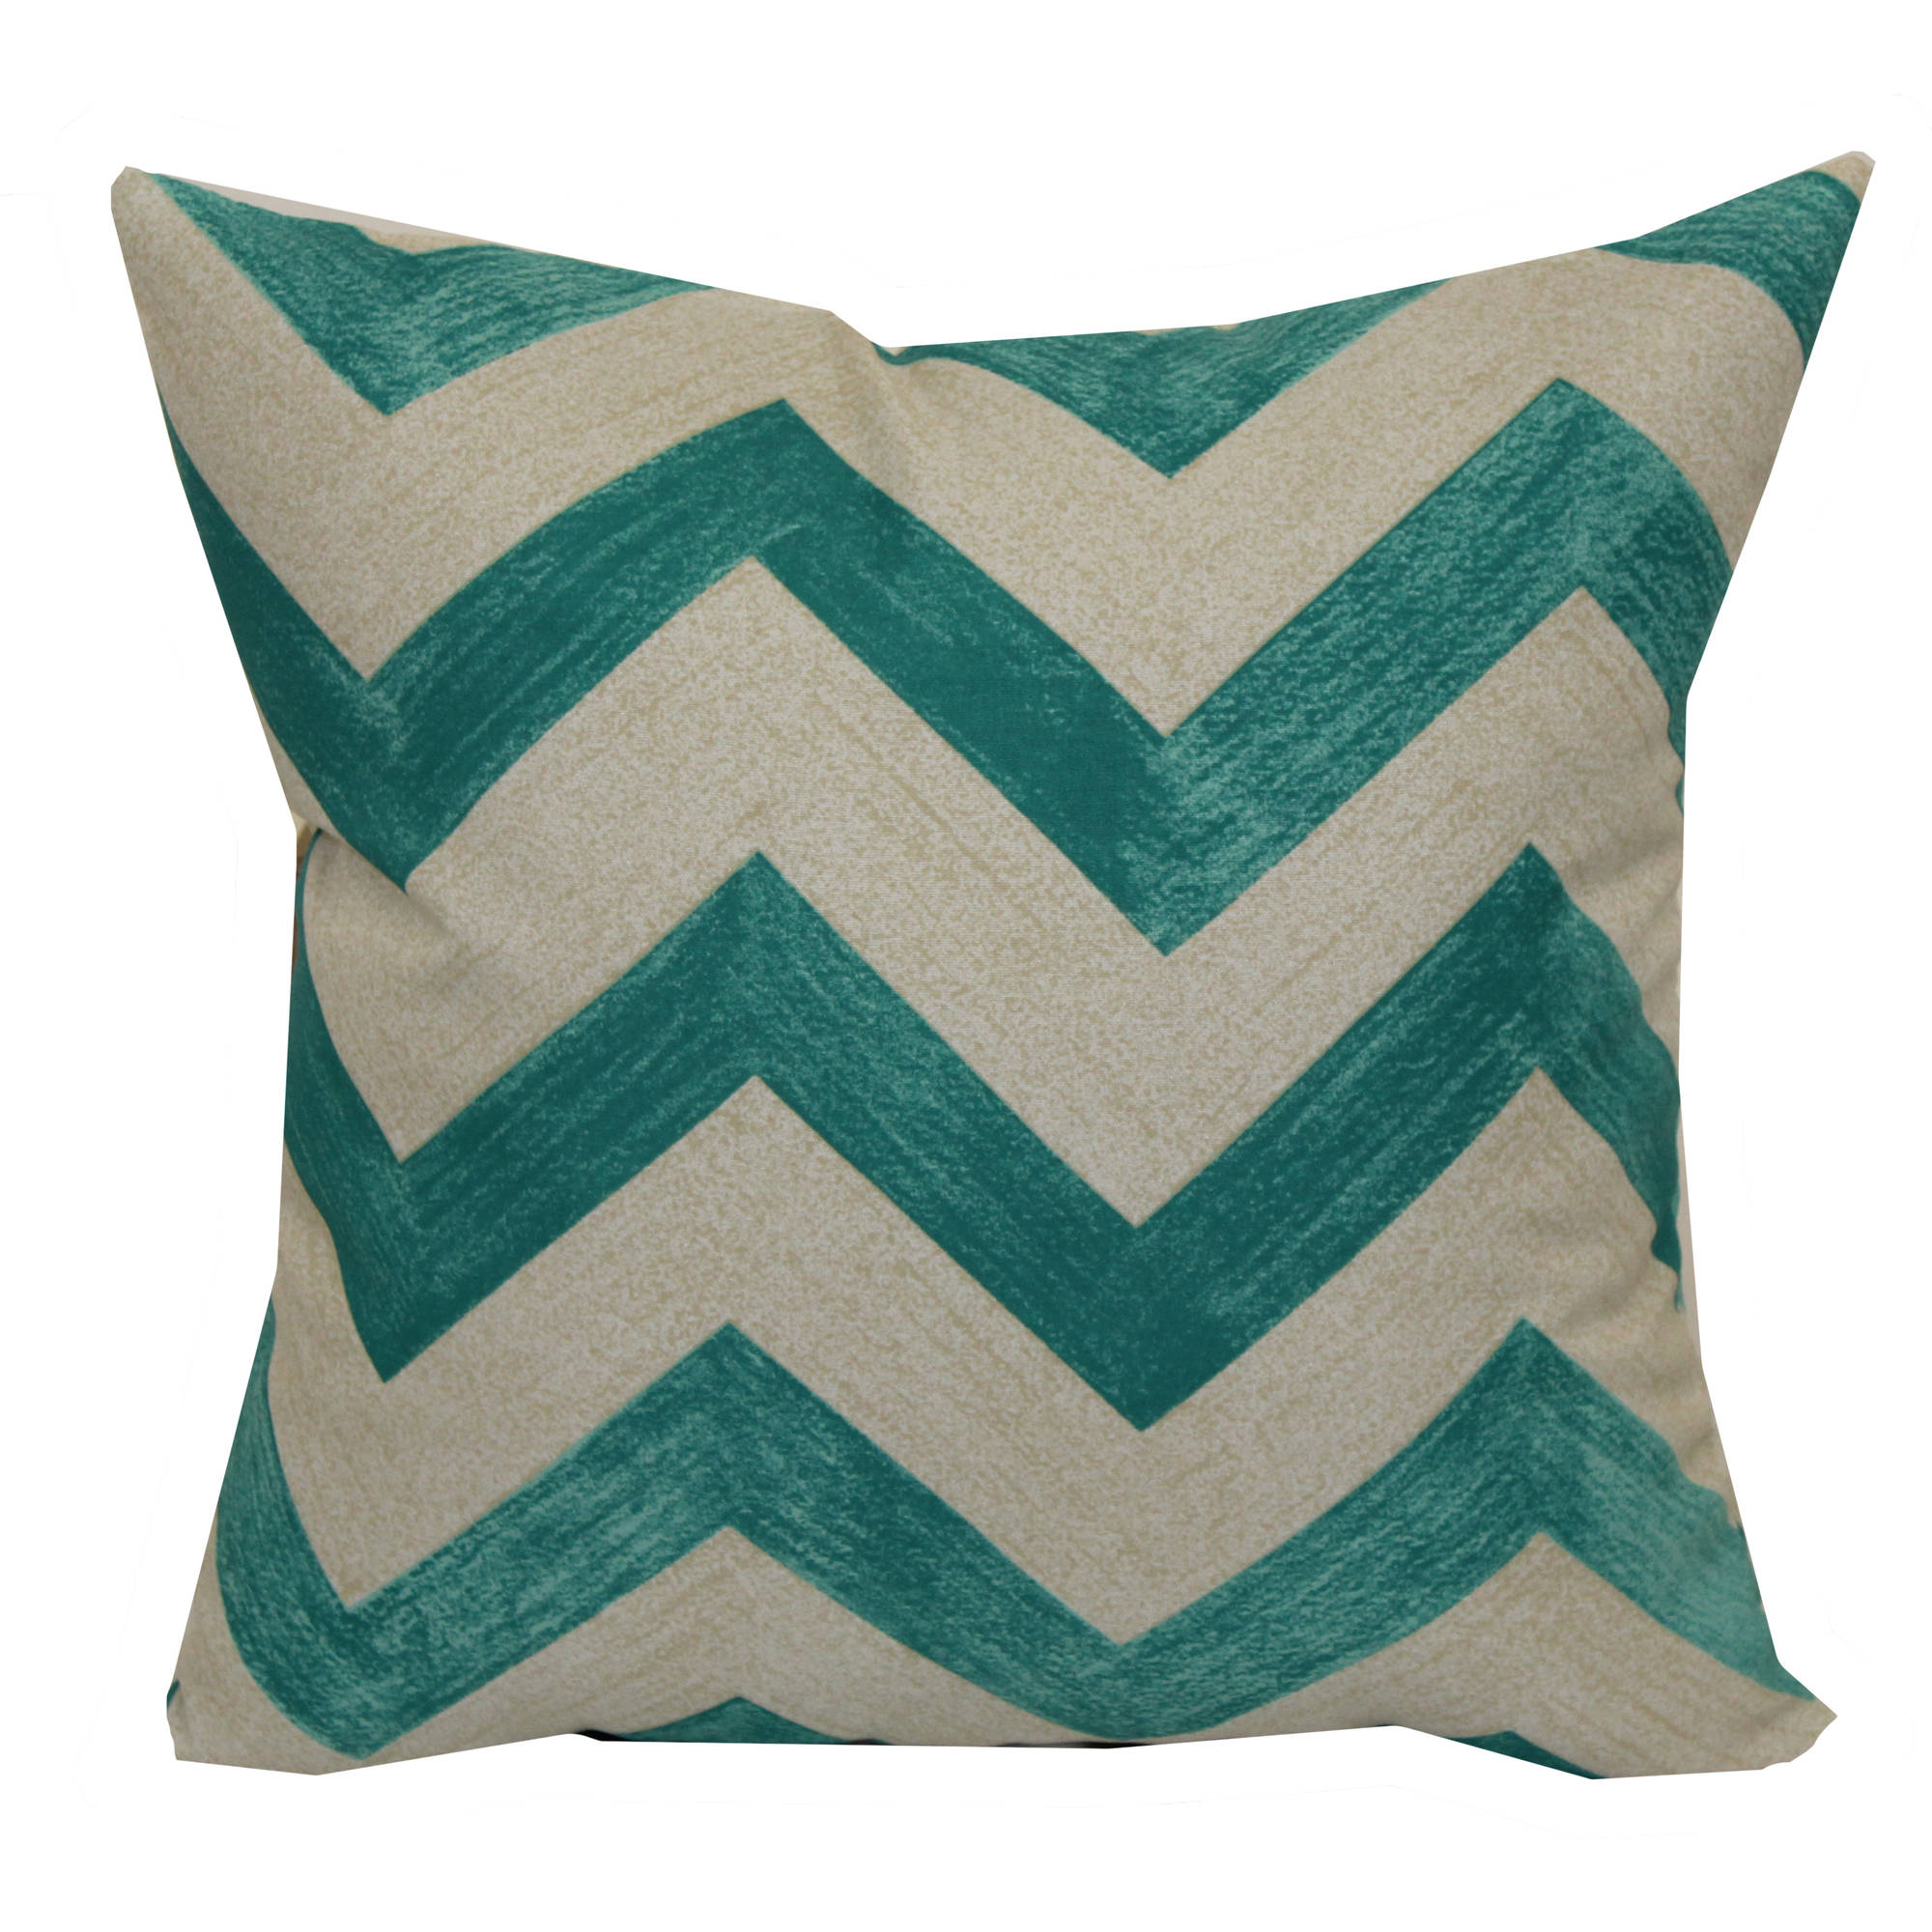 Fancy outdoor throw pillows for outdoor design with cheap outdoor throw pillows